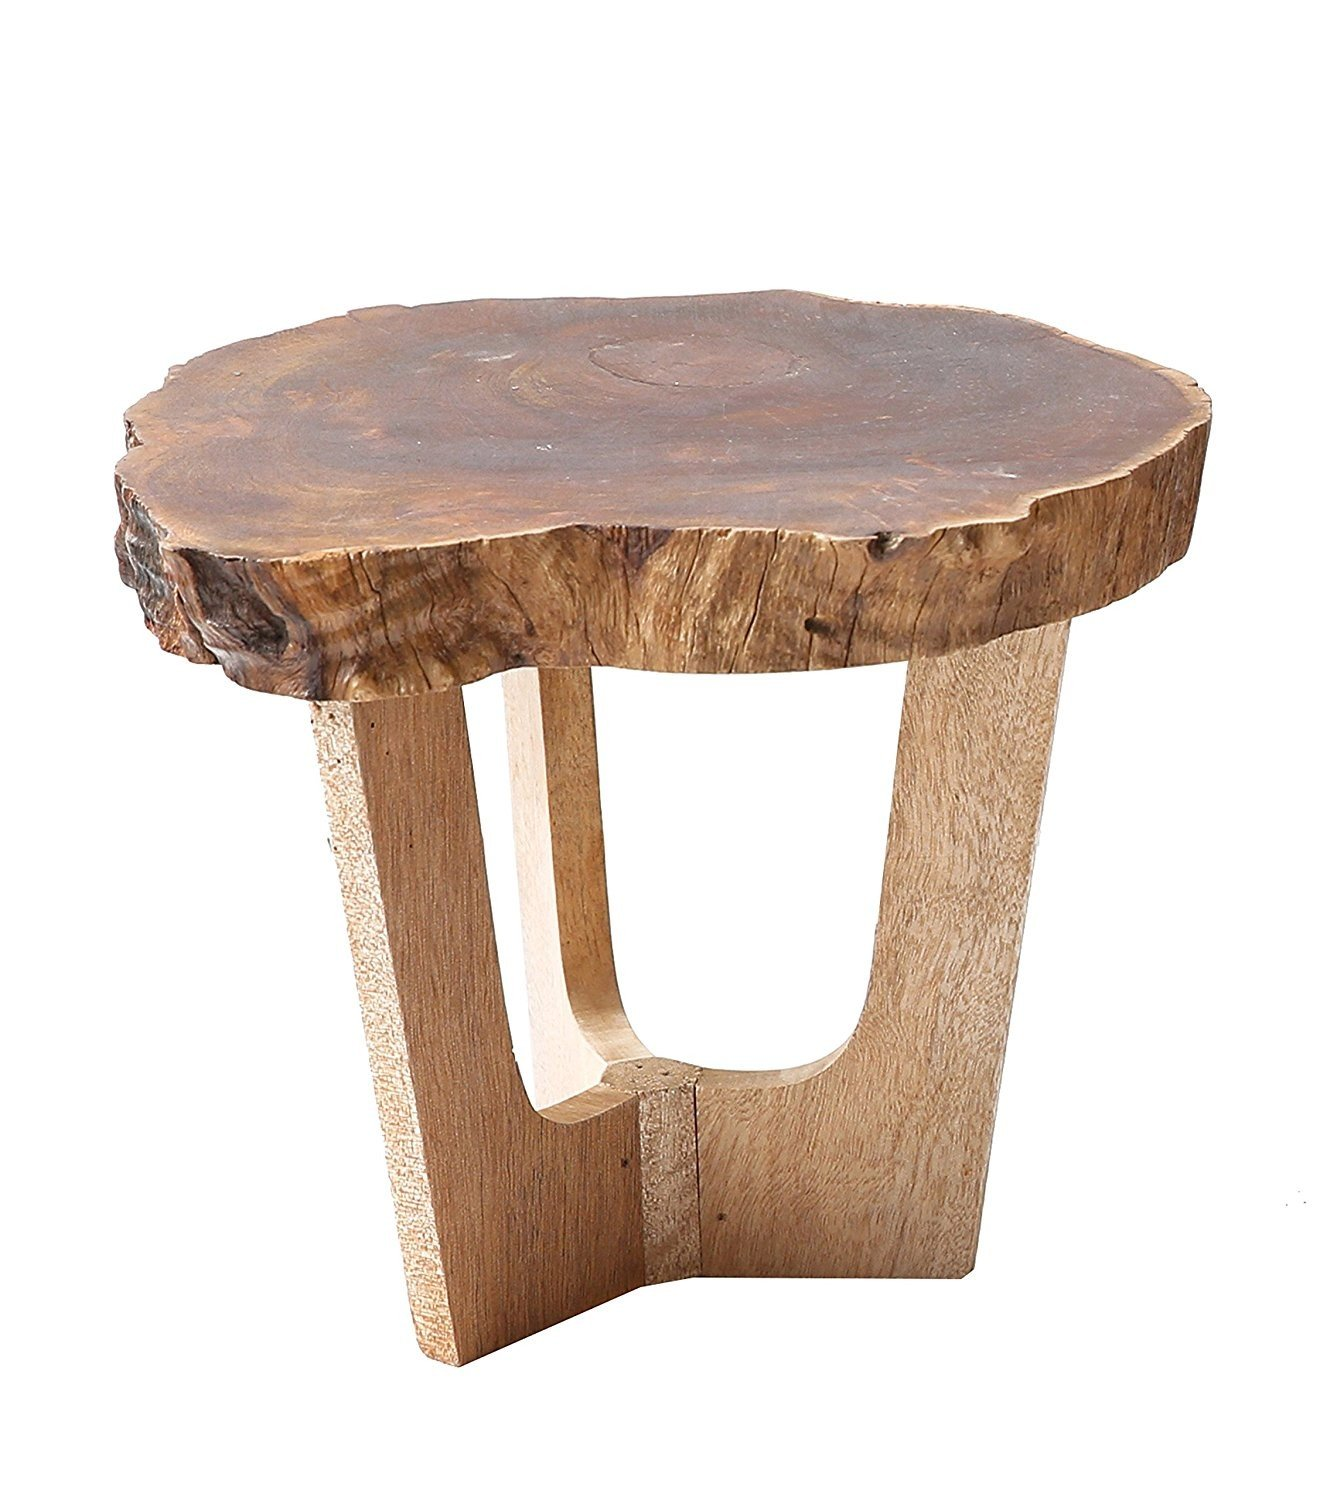 Indoor Multi-function Accent table Study Computer Home Office Desk Bedroom Living Room Modern Style End Table Sofa Side Table Coffee Table Wooden Base